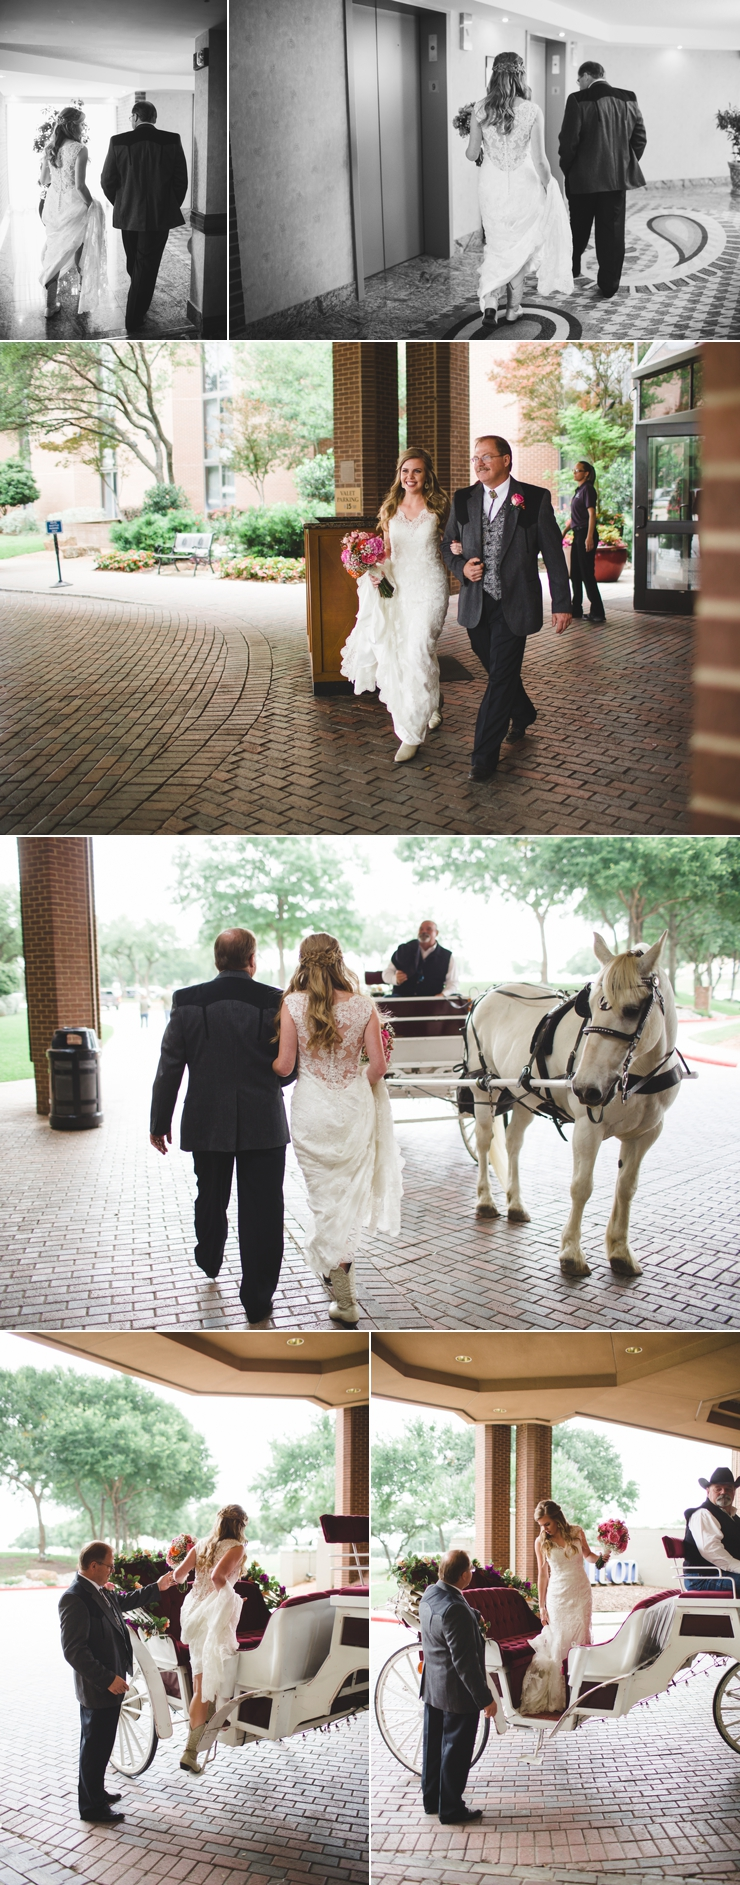 White Wedding - Blog Collages 8.jpg